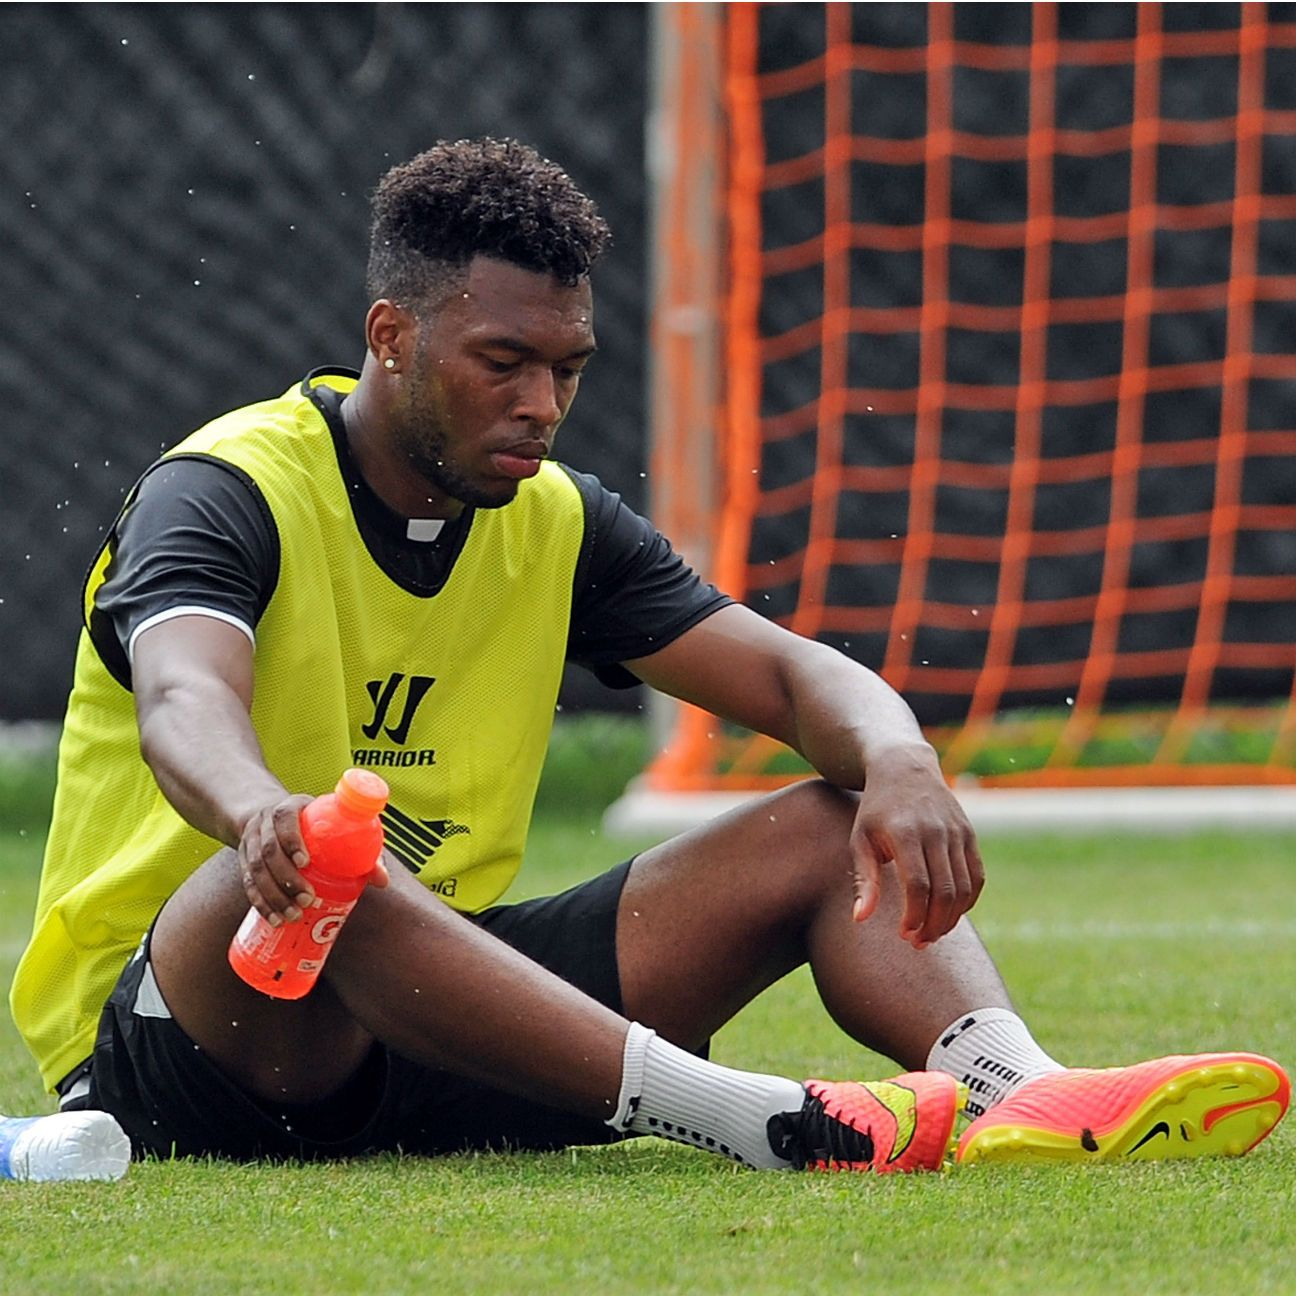 Daniel Sturridge to miss Liverpool clash with Chelsea due to calf injury